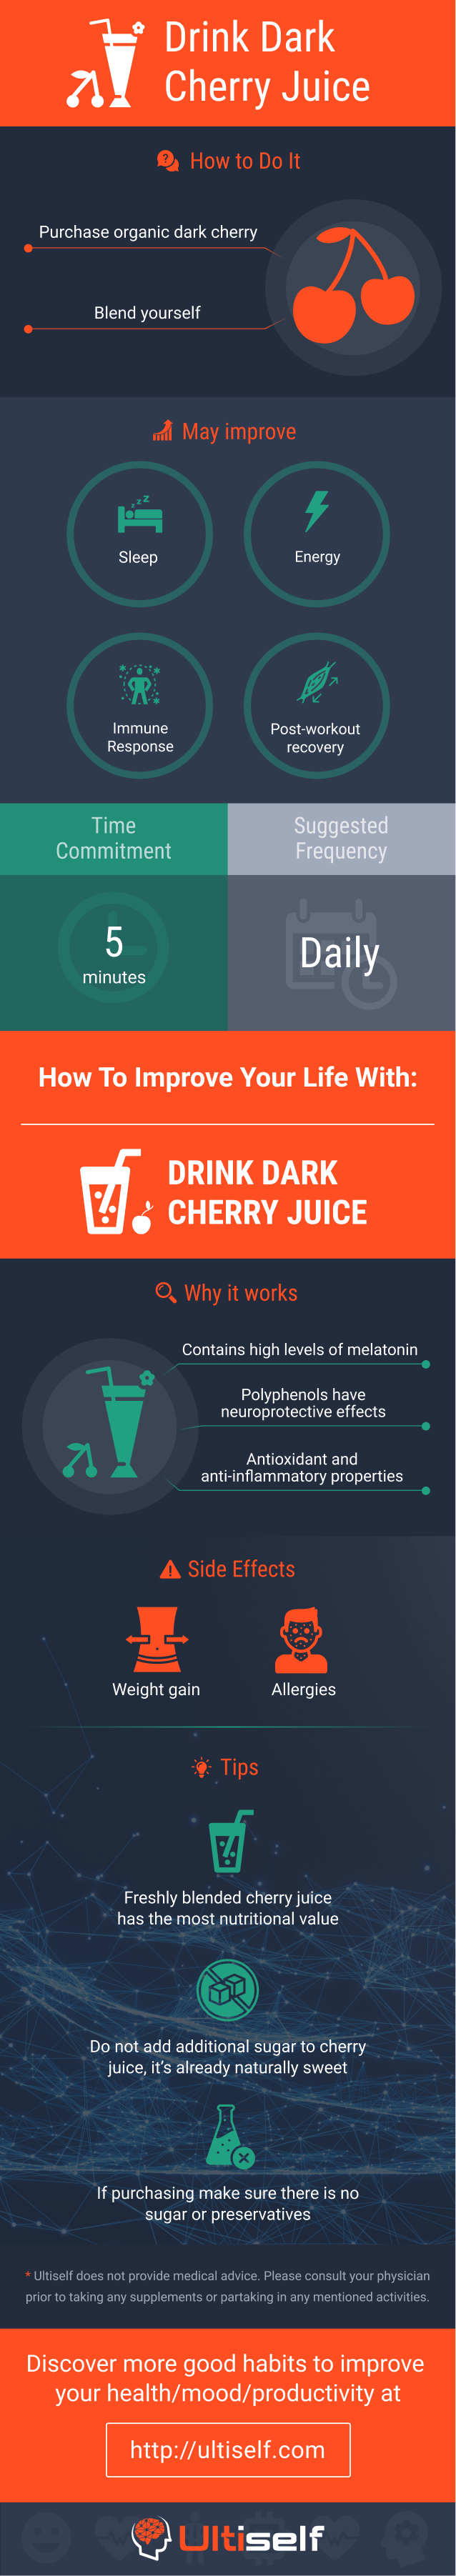 Drink Dark Cherry juice infographic